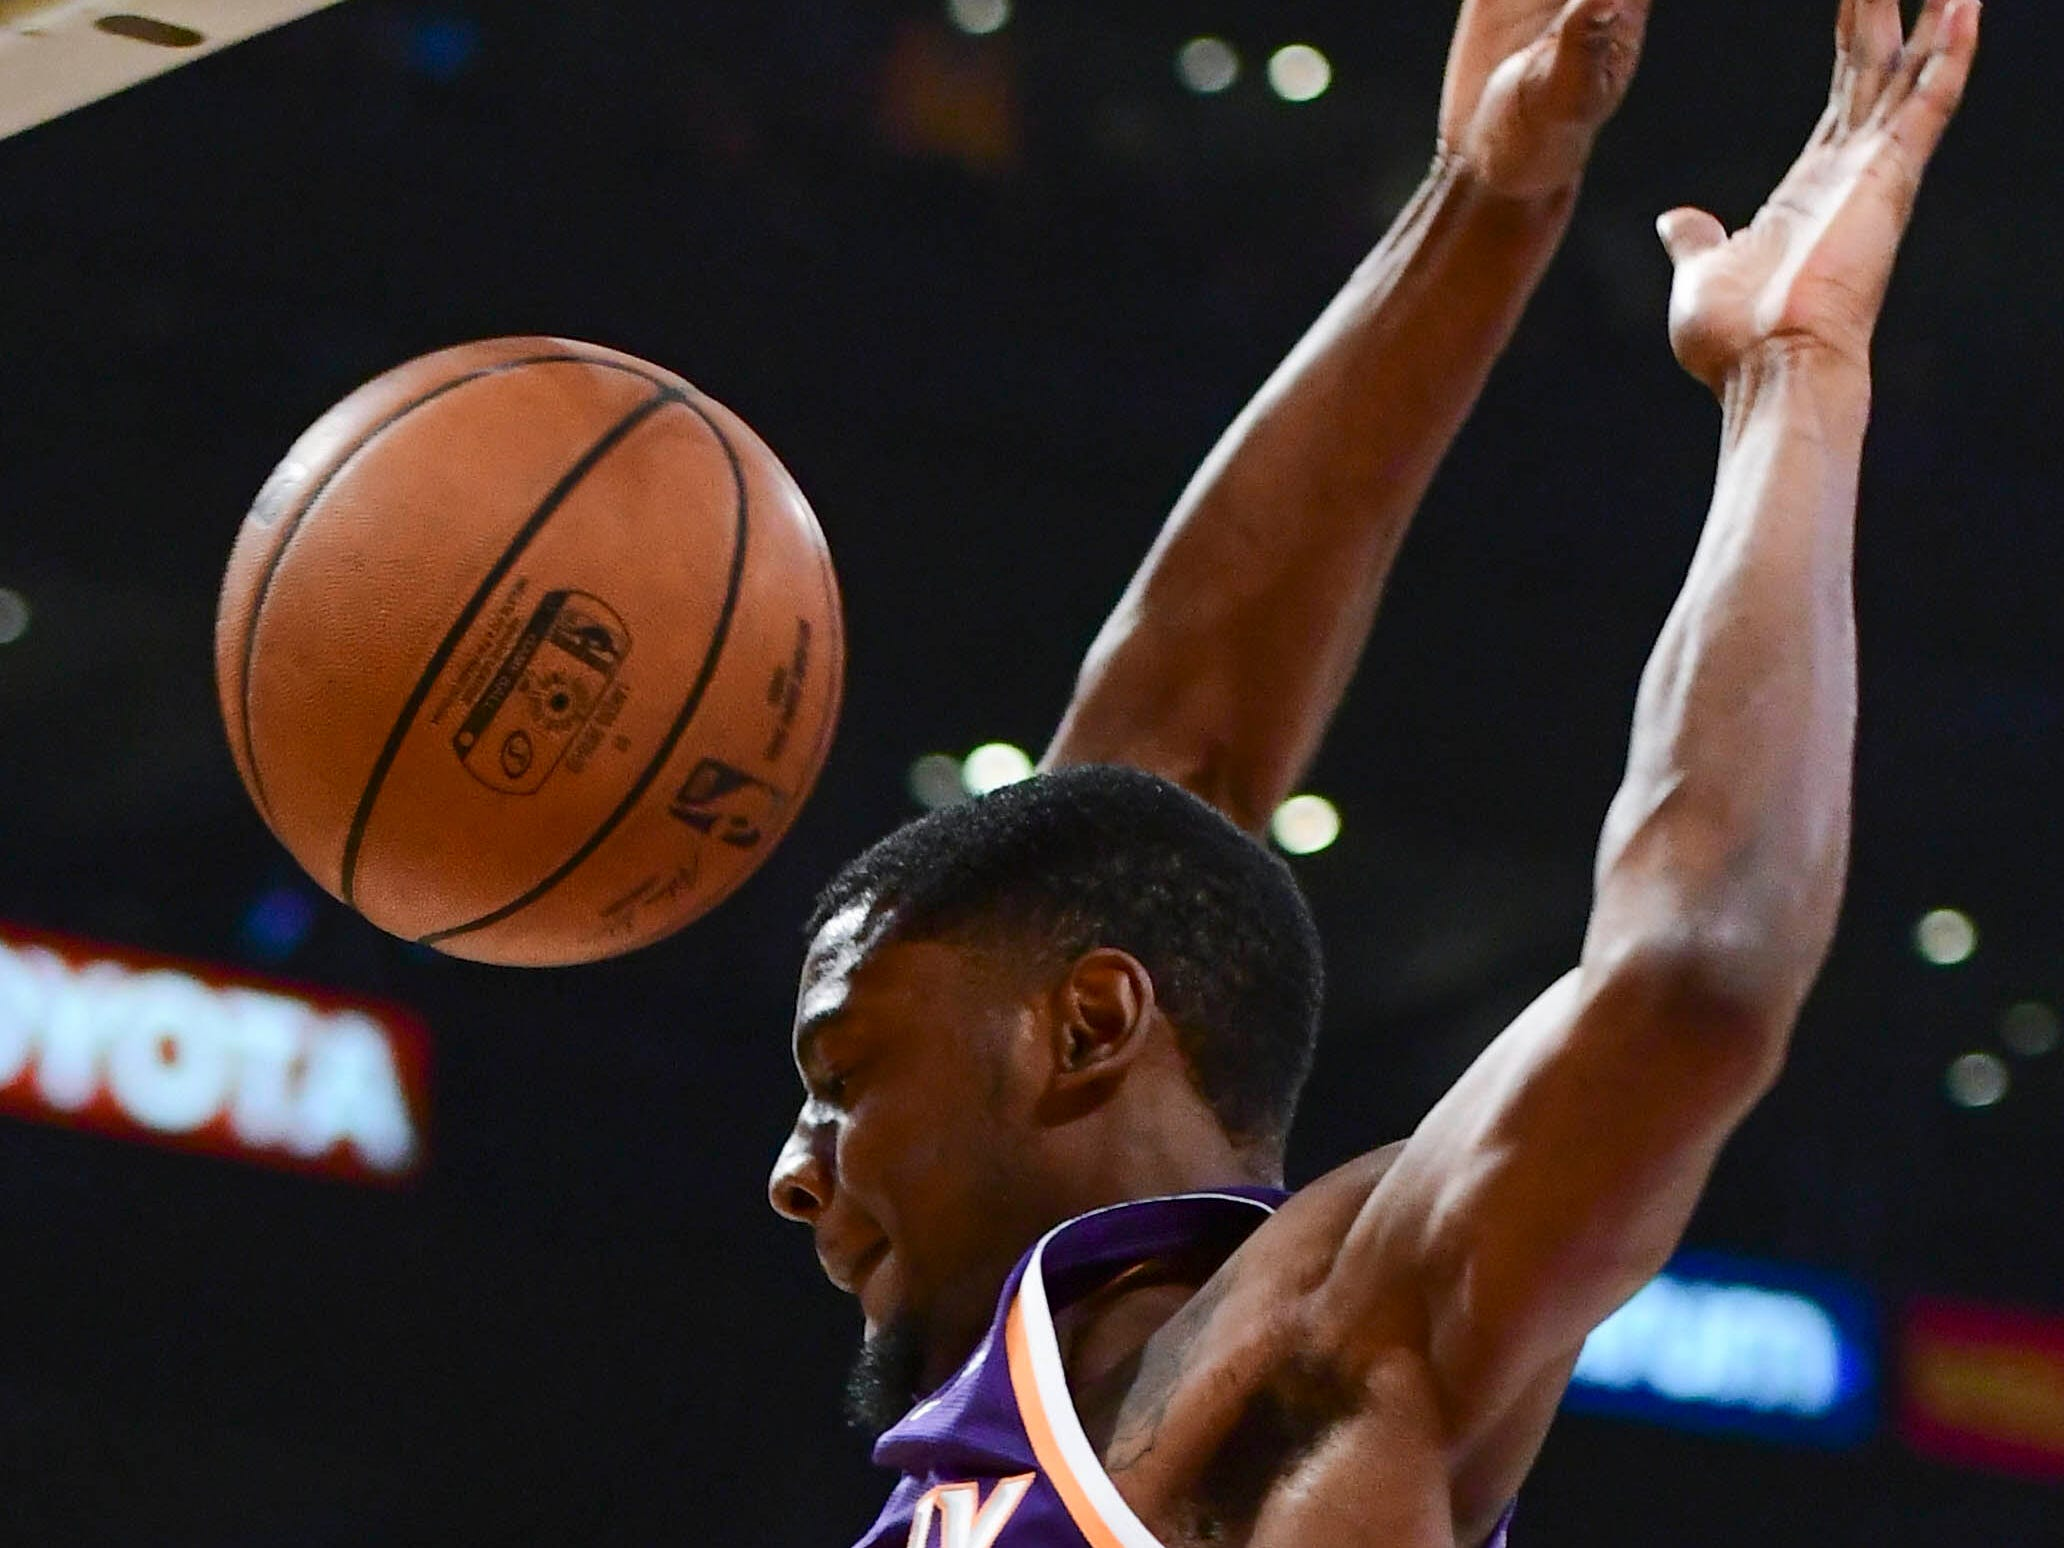 Dec 2, 2018; Los Angeles, CA, USA; Phoenix Suns forward Josh Jackson (20) dunks during the first quarter against the Los Angeles Lakers at Staples Center. Mandatory Credit: Robert Hanashiro-USA TODAY Sports